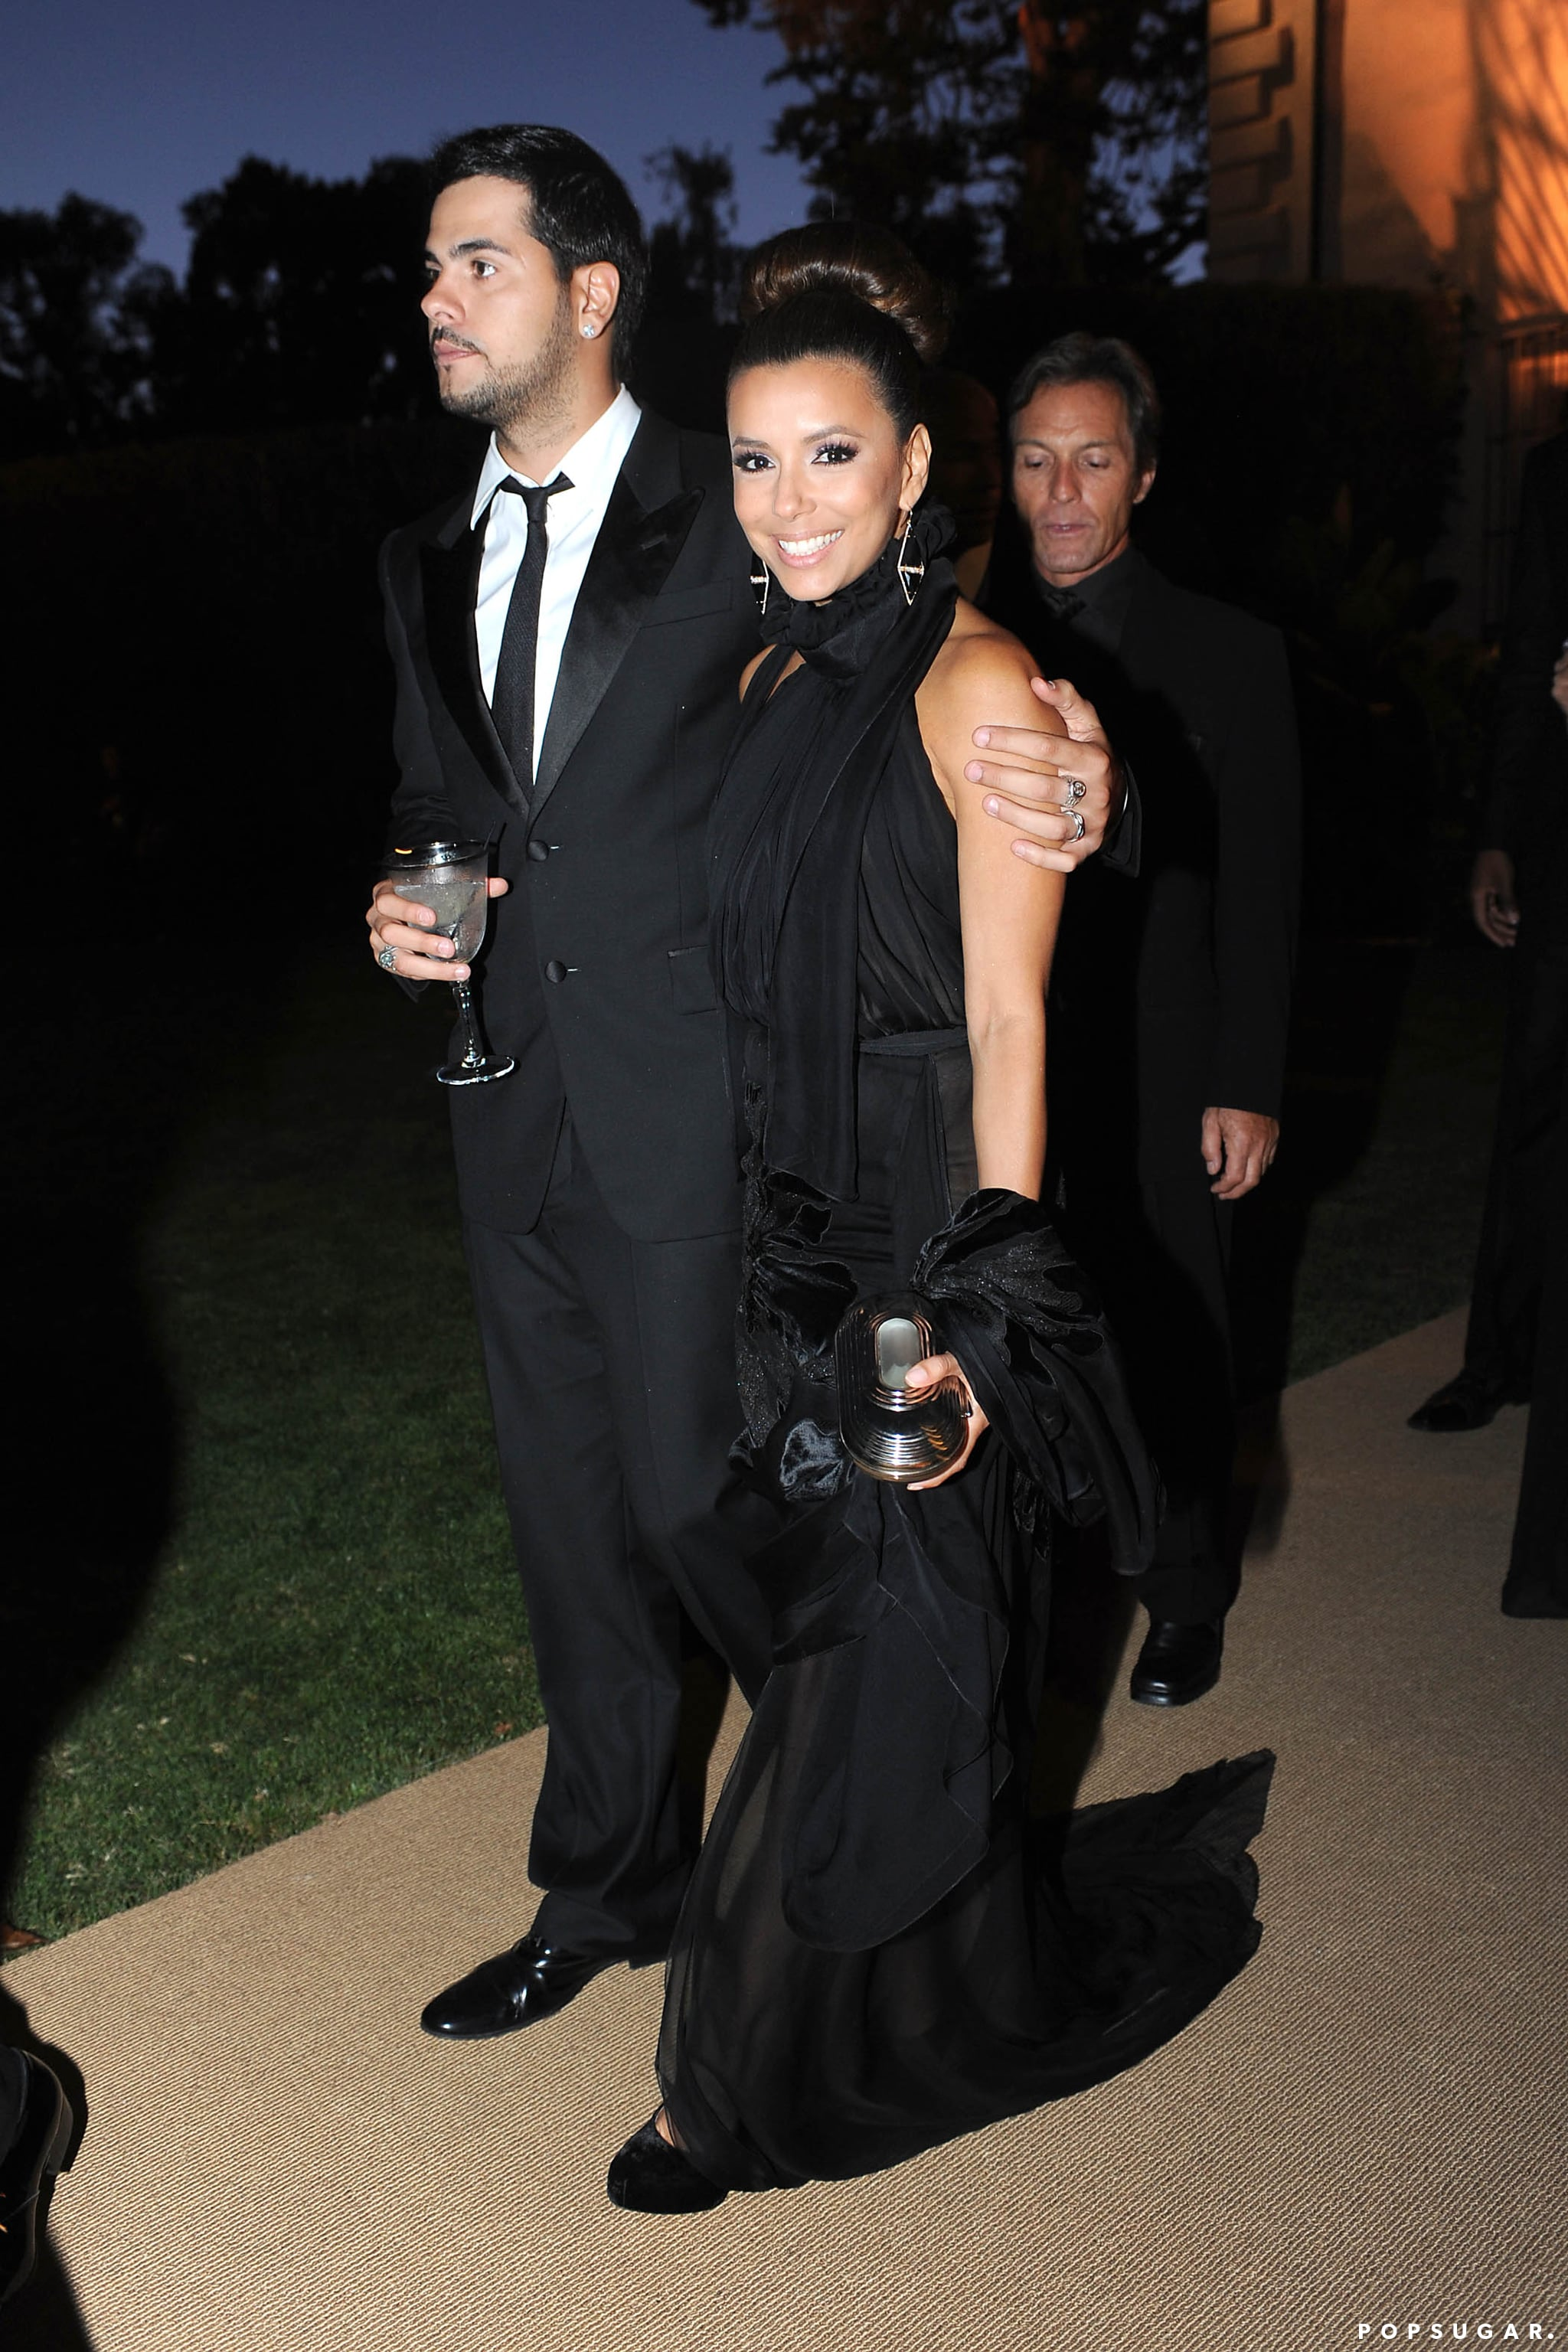 Eva Longoria brought her then-boyfriend, Eduardo Cruz, along for the festivities.